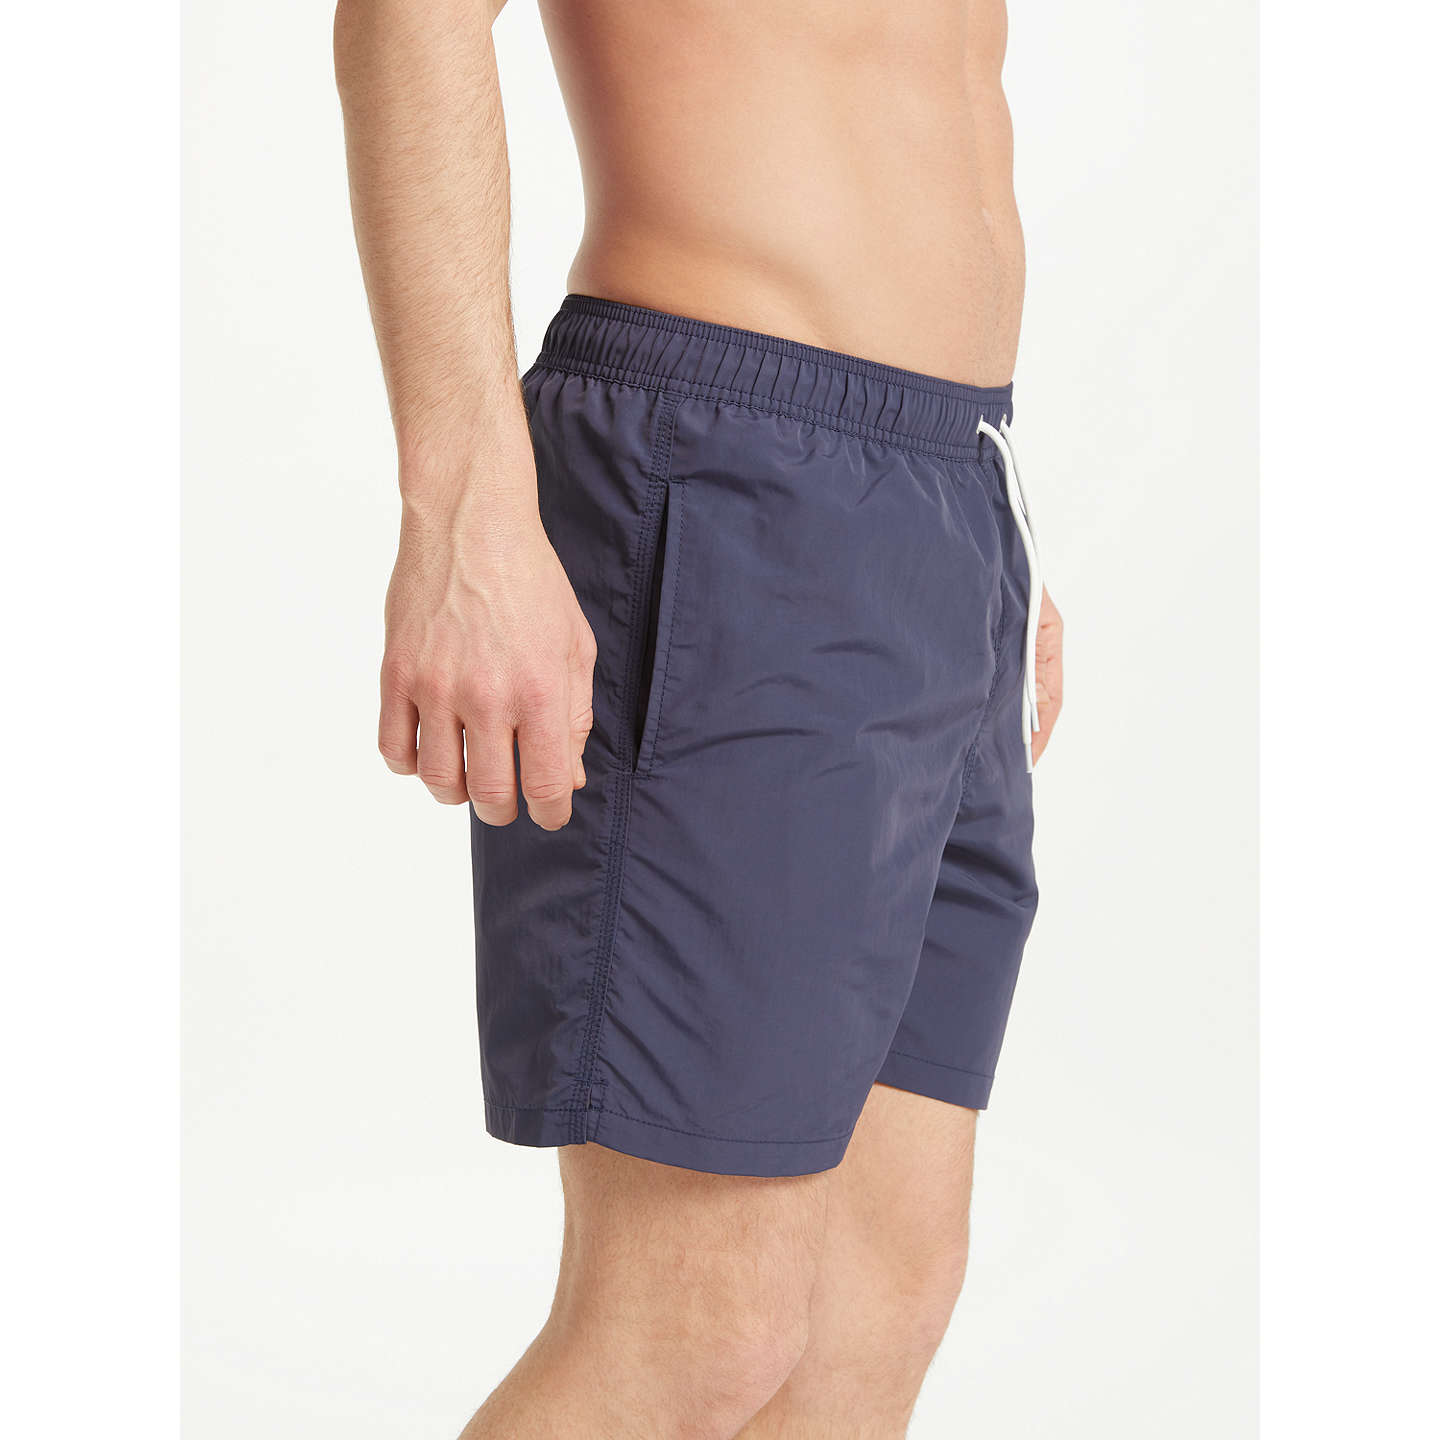 BuyHackett London Mr Classic Swim Shorts, Navy, M Online at johnlewis.com